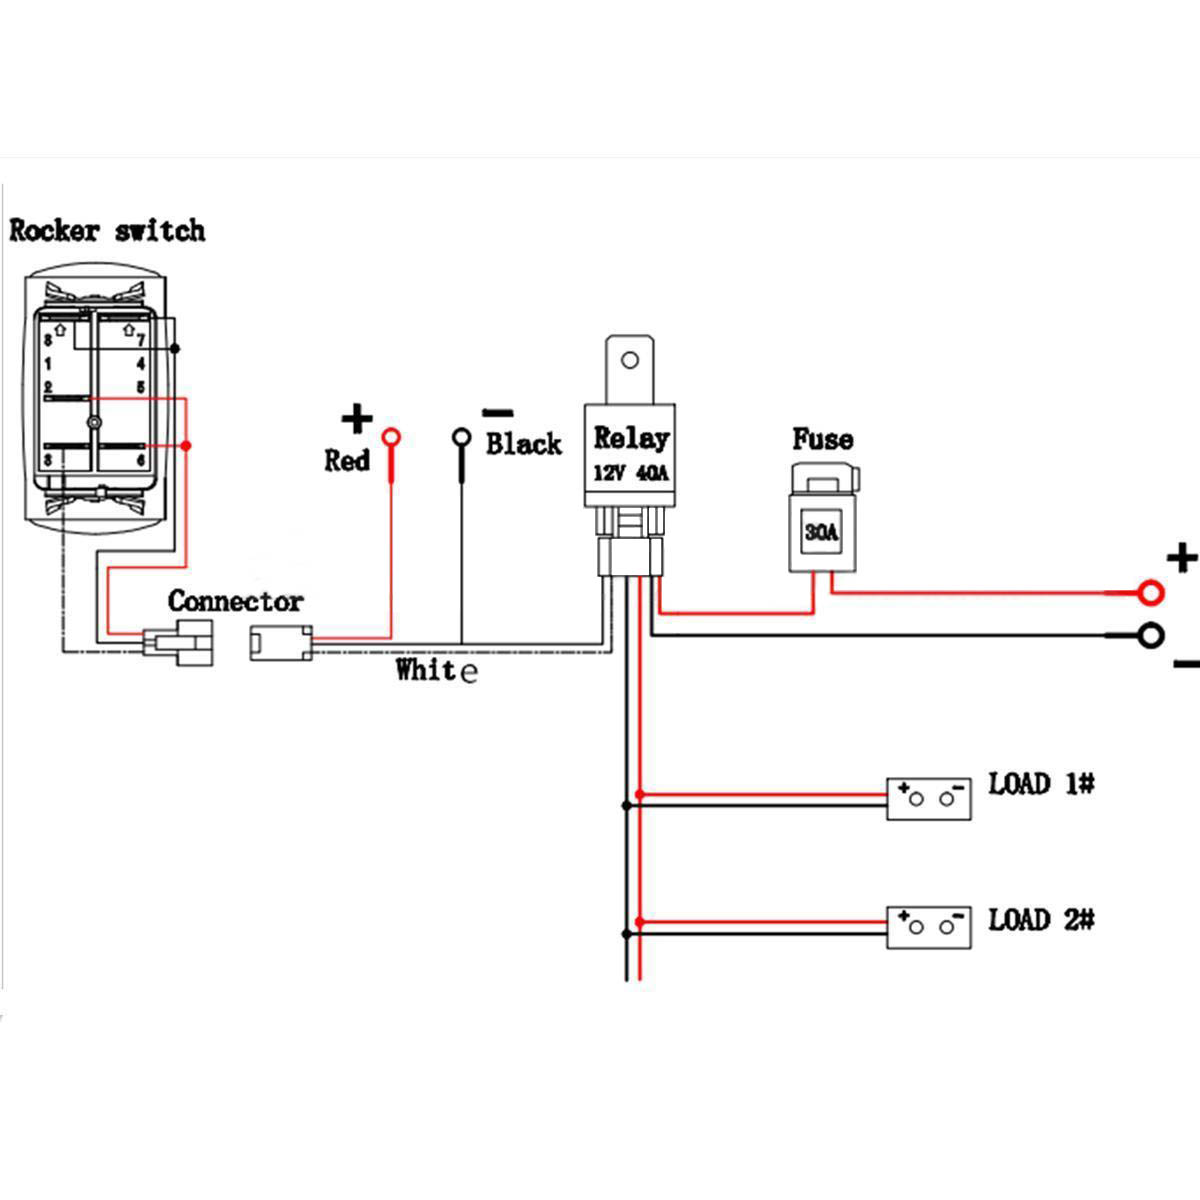 Relay Wiring Harness | Wiring Diagram on